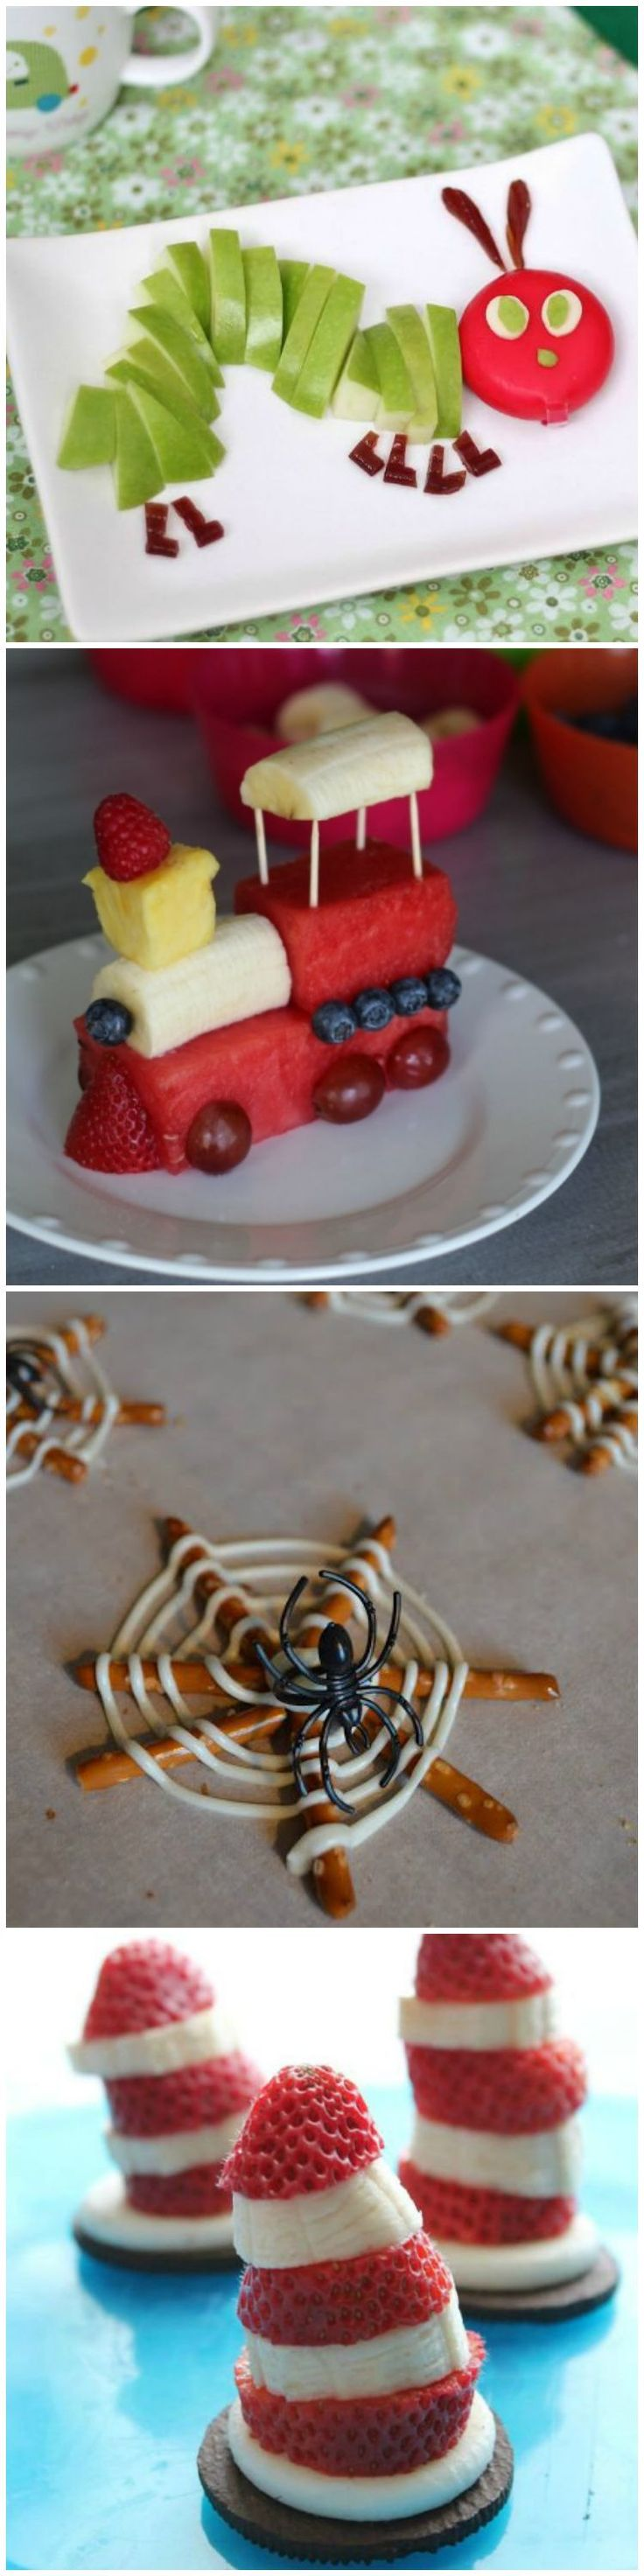 Your kids will love these delicious recipes inspired by their favorite books!